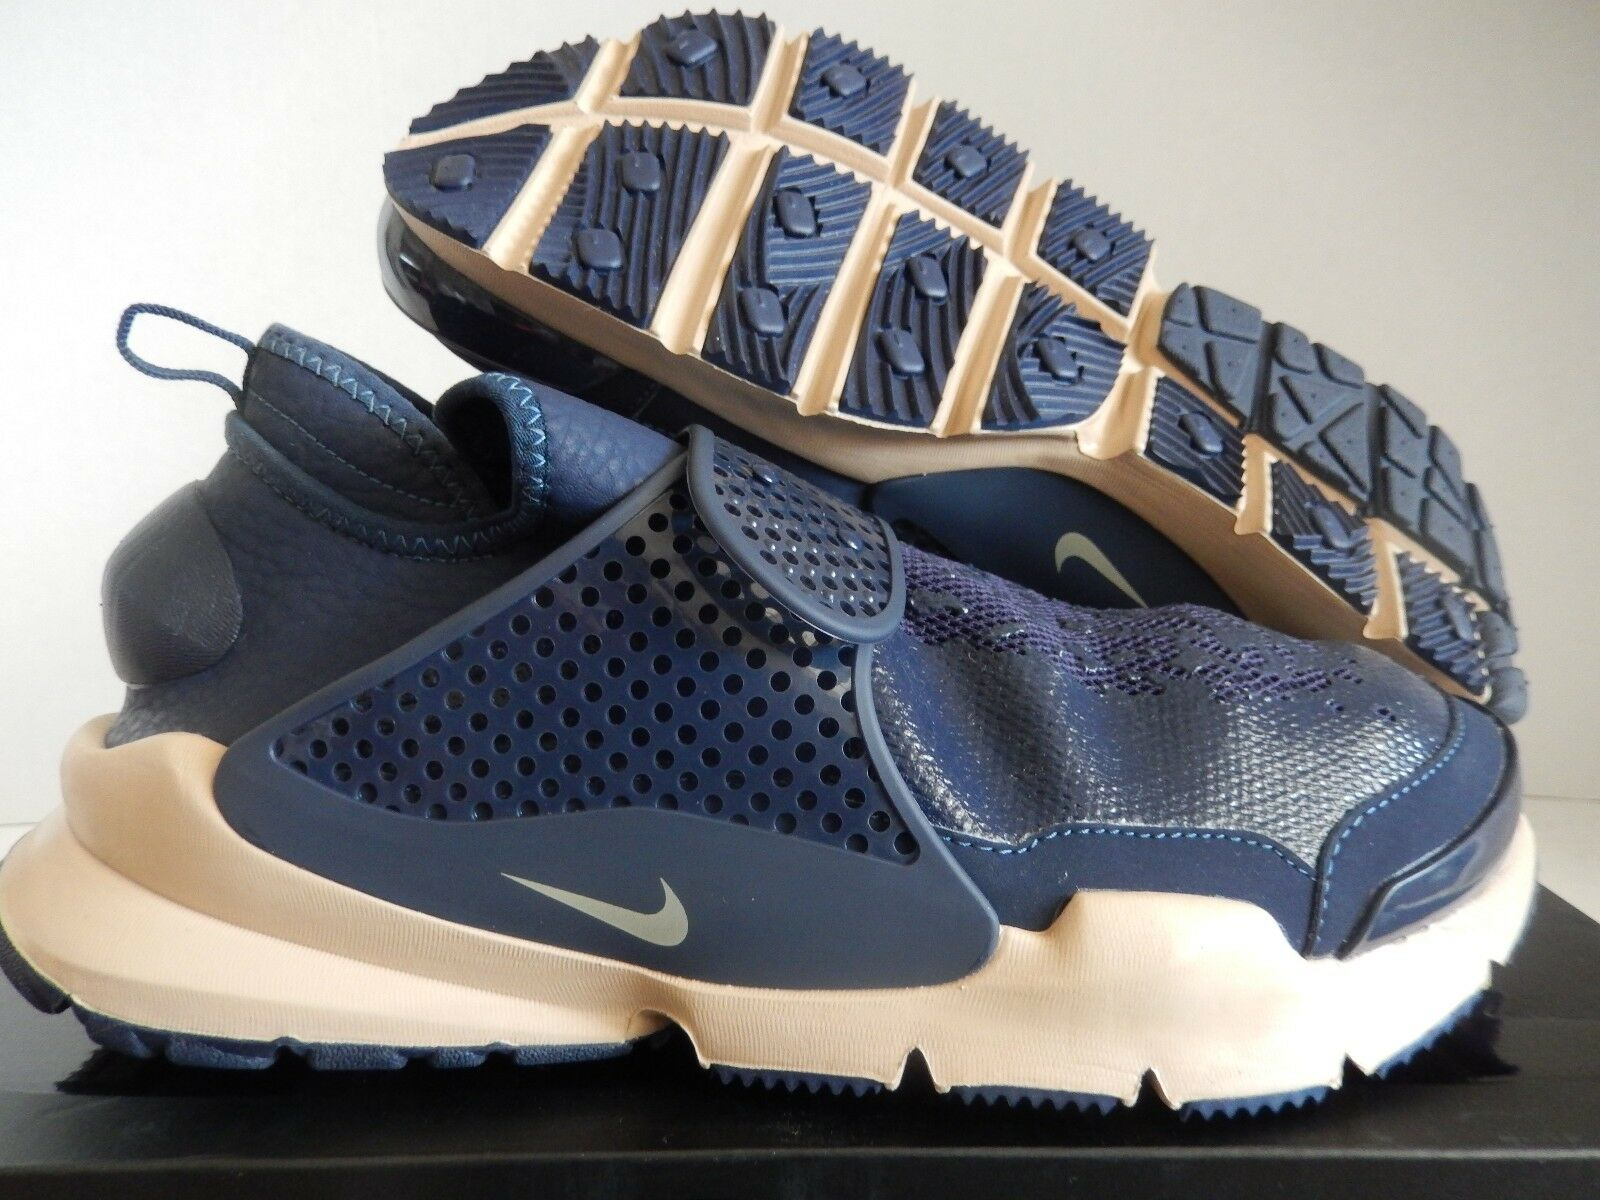 NIKE SOCK DART MID SI NIKELAB X STONE ISLAND OBSIDIAN BLUE Price reduction The latest discount shoes for men and women